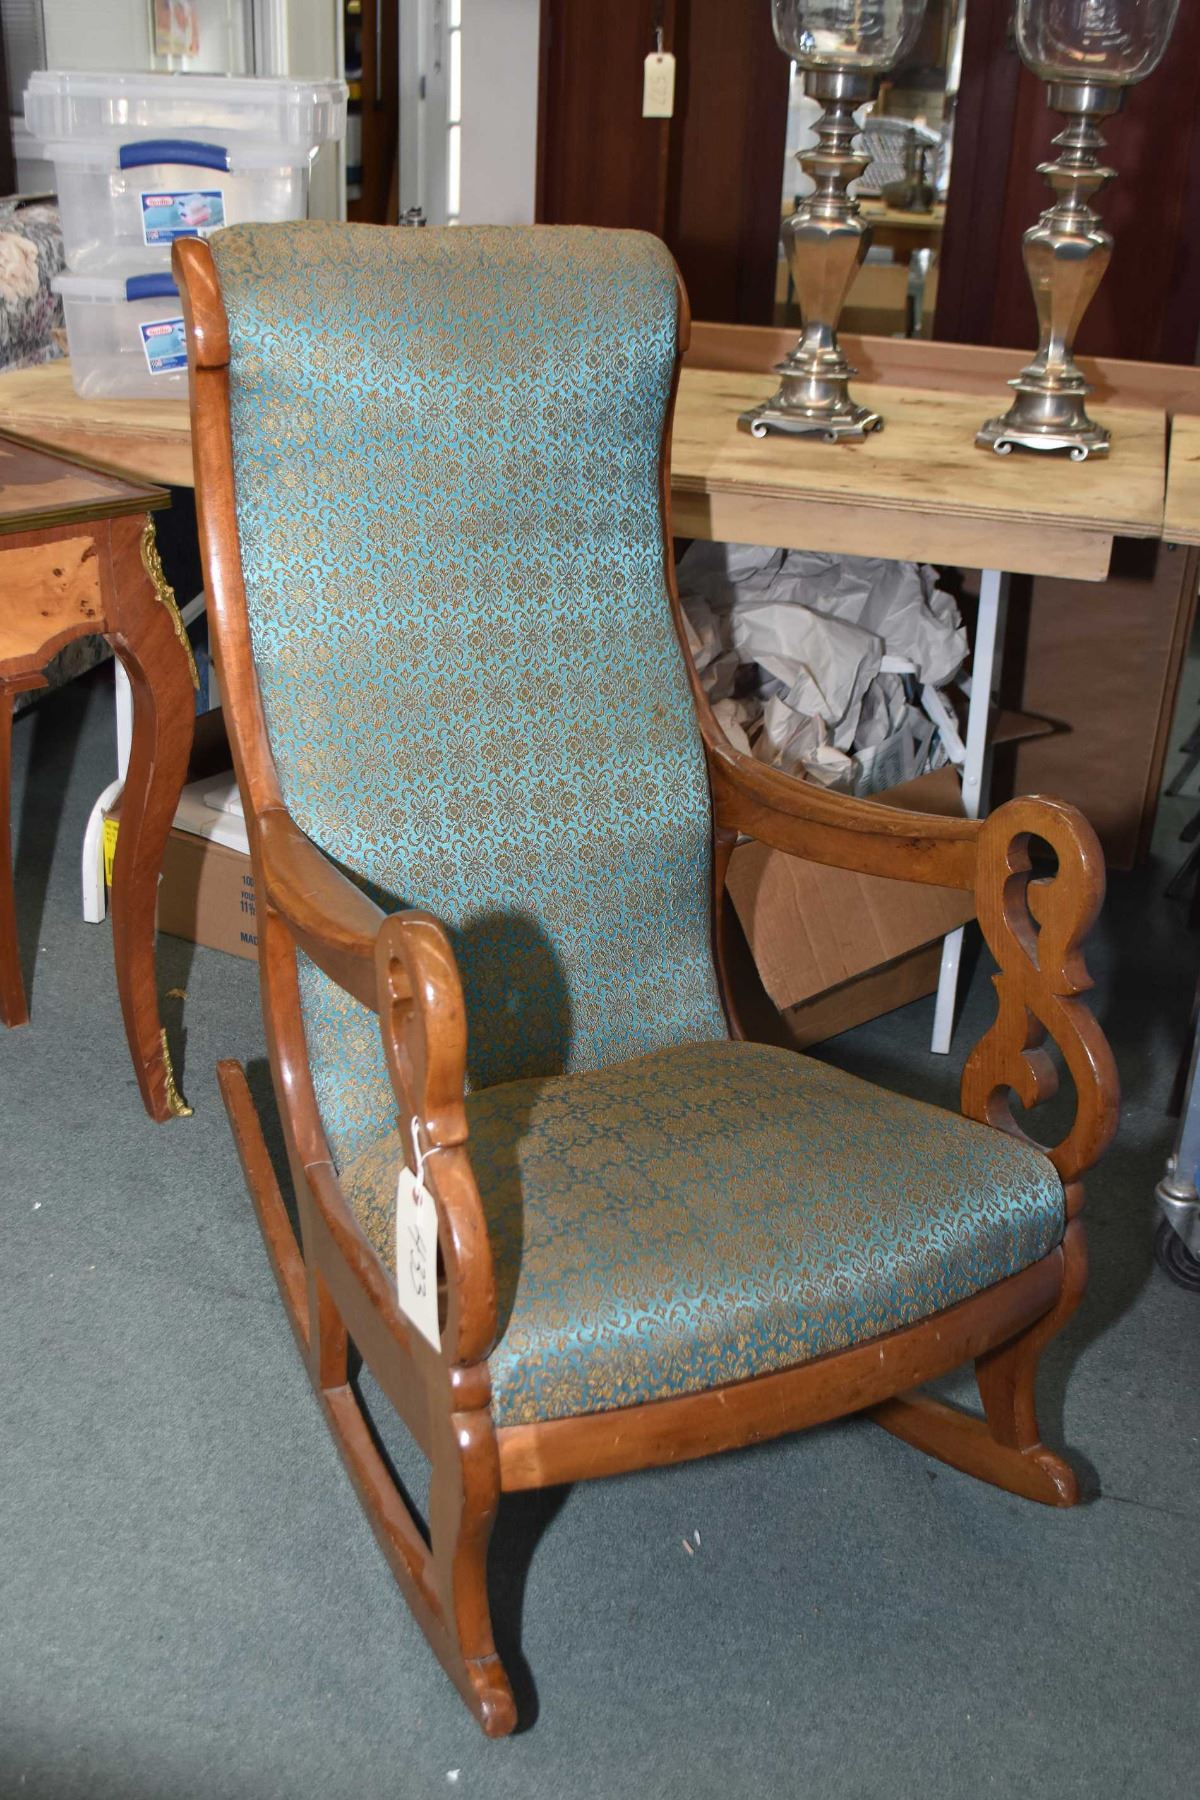 Swell Antique Open Arm Rocking Chair With Upholstered Seat And Pdpeps Interior Chair Design Pdpepsorg